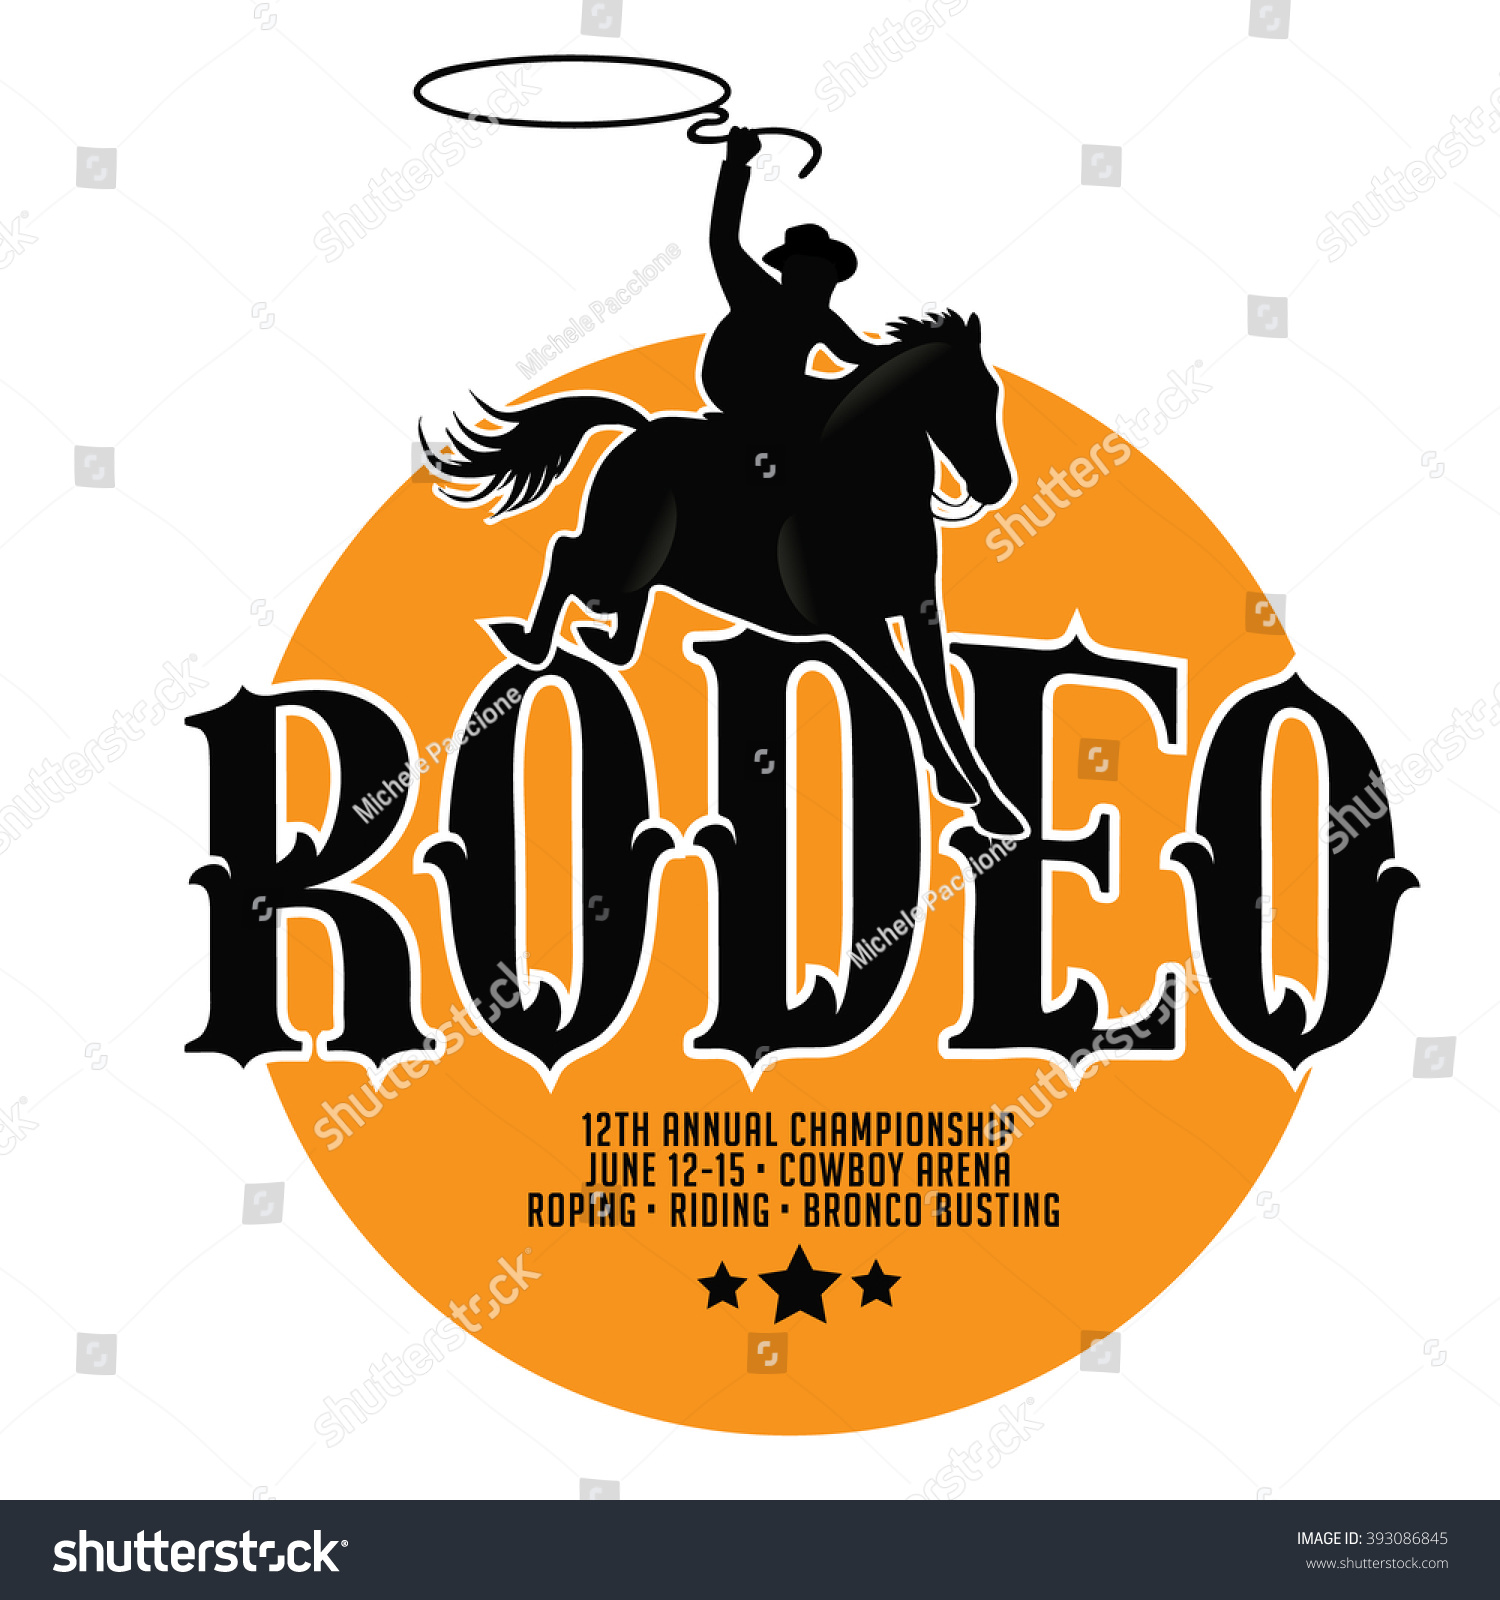 Poster design eps - Rodeo Poster Design With Copy Space Eps 10 Vector